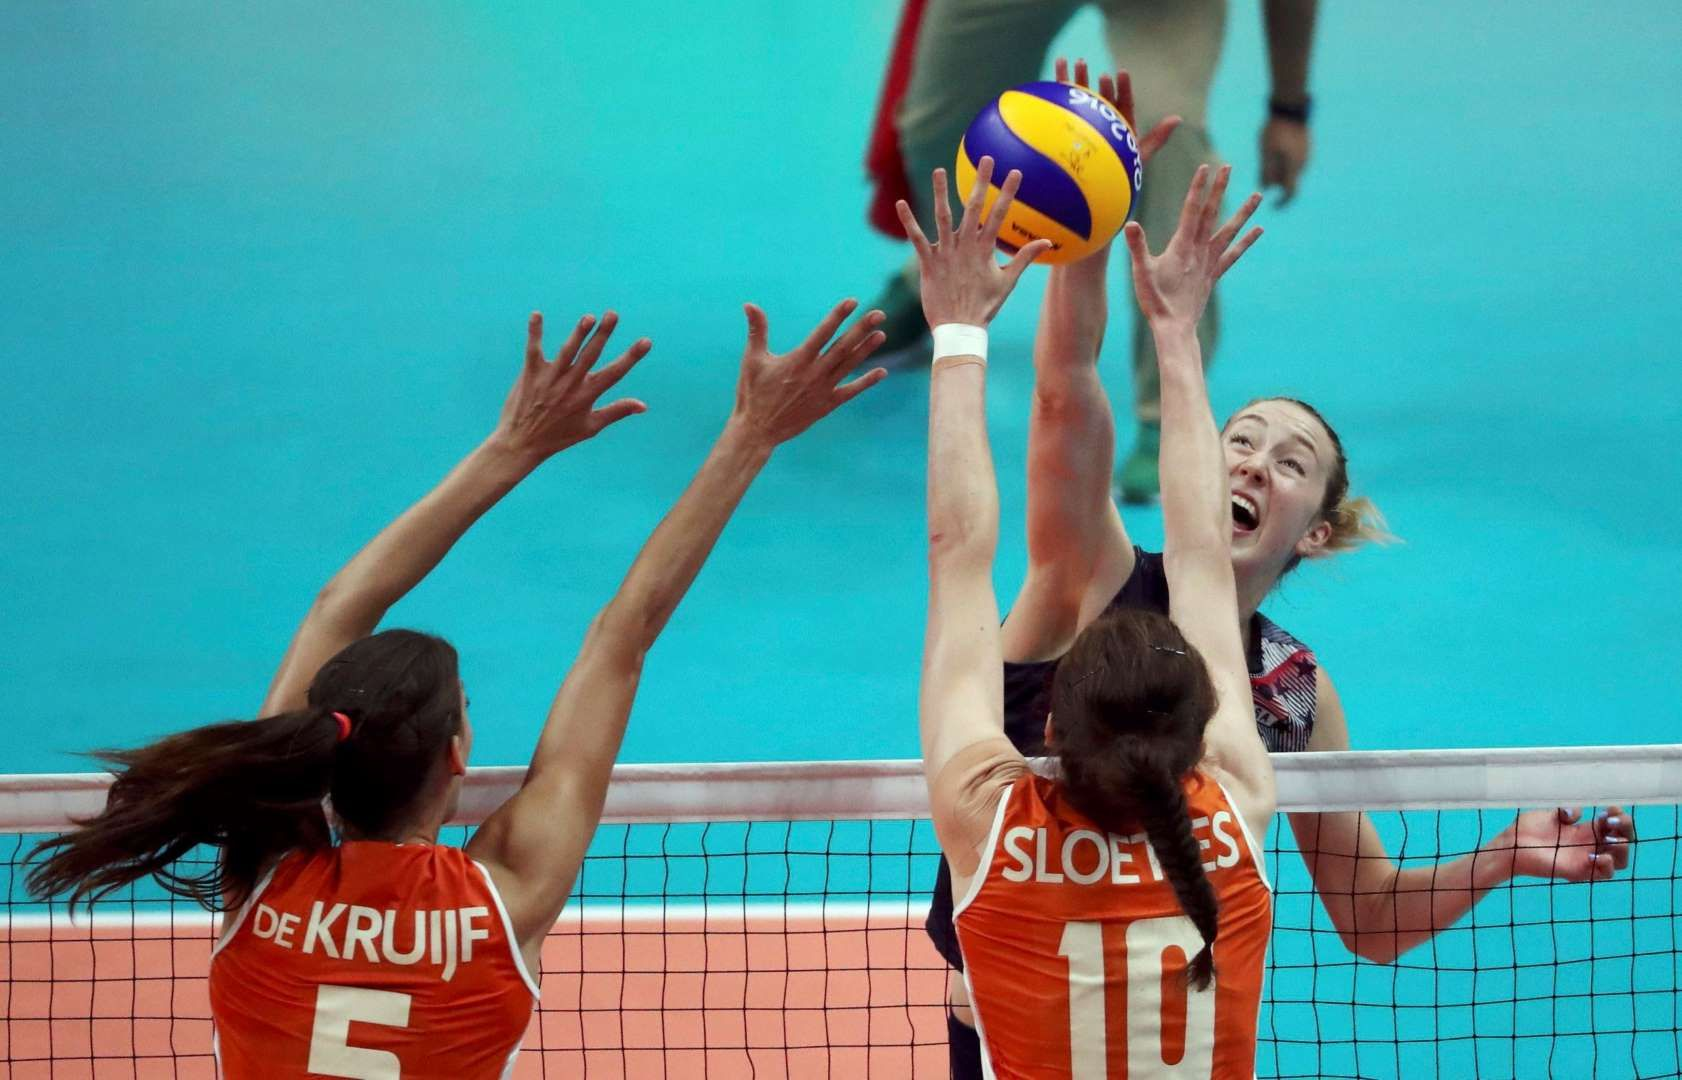 Queen Of The Hill Kimberly Hill Of The United States Spikes As Robin De Kruijf And Lonneke Sloetjes Of The Ne Summer Olympics 2016 Olympics Summer Olympics